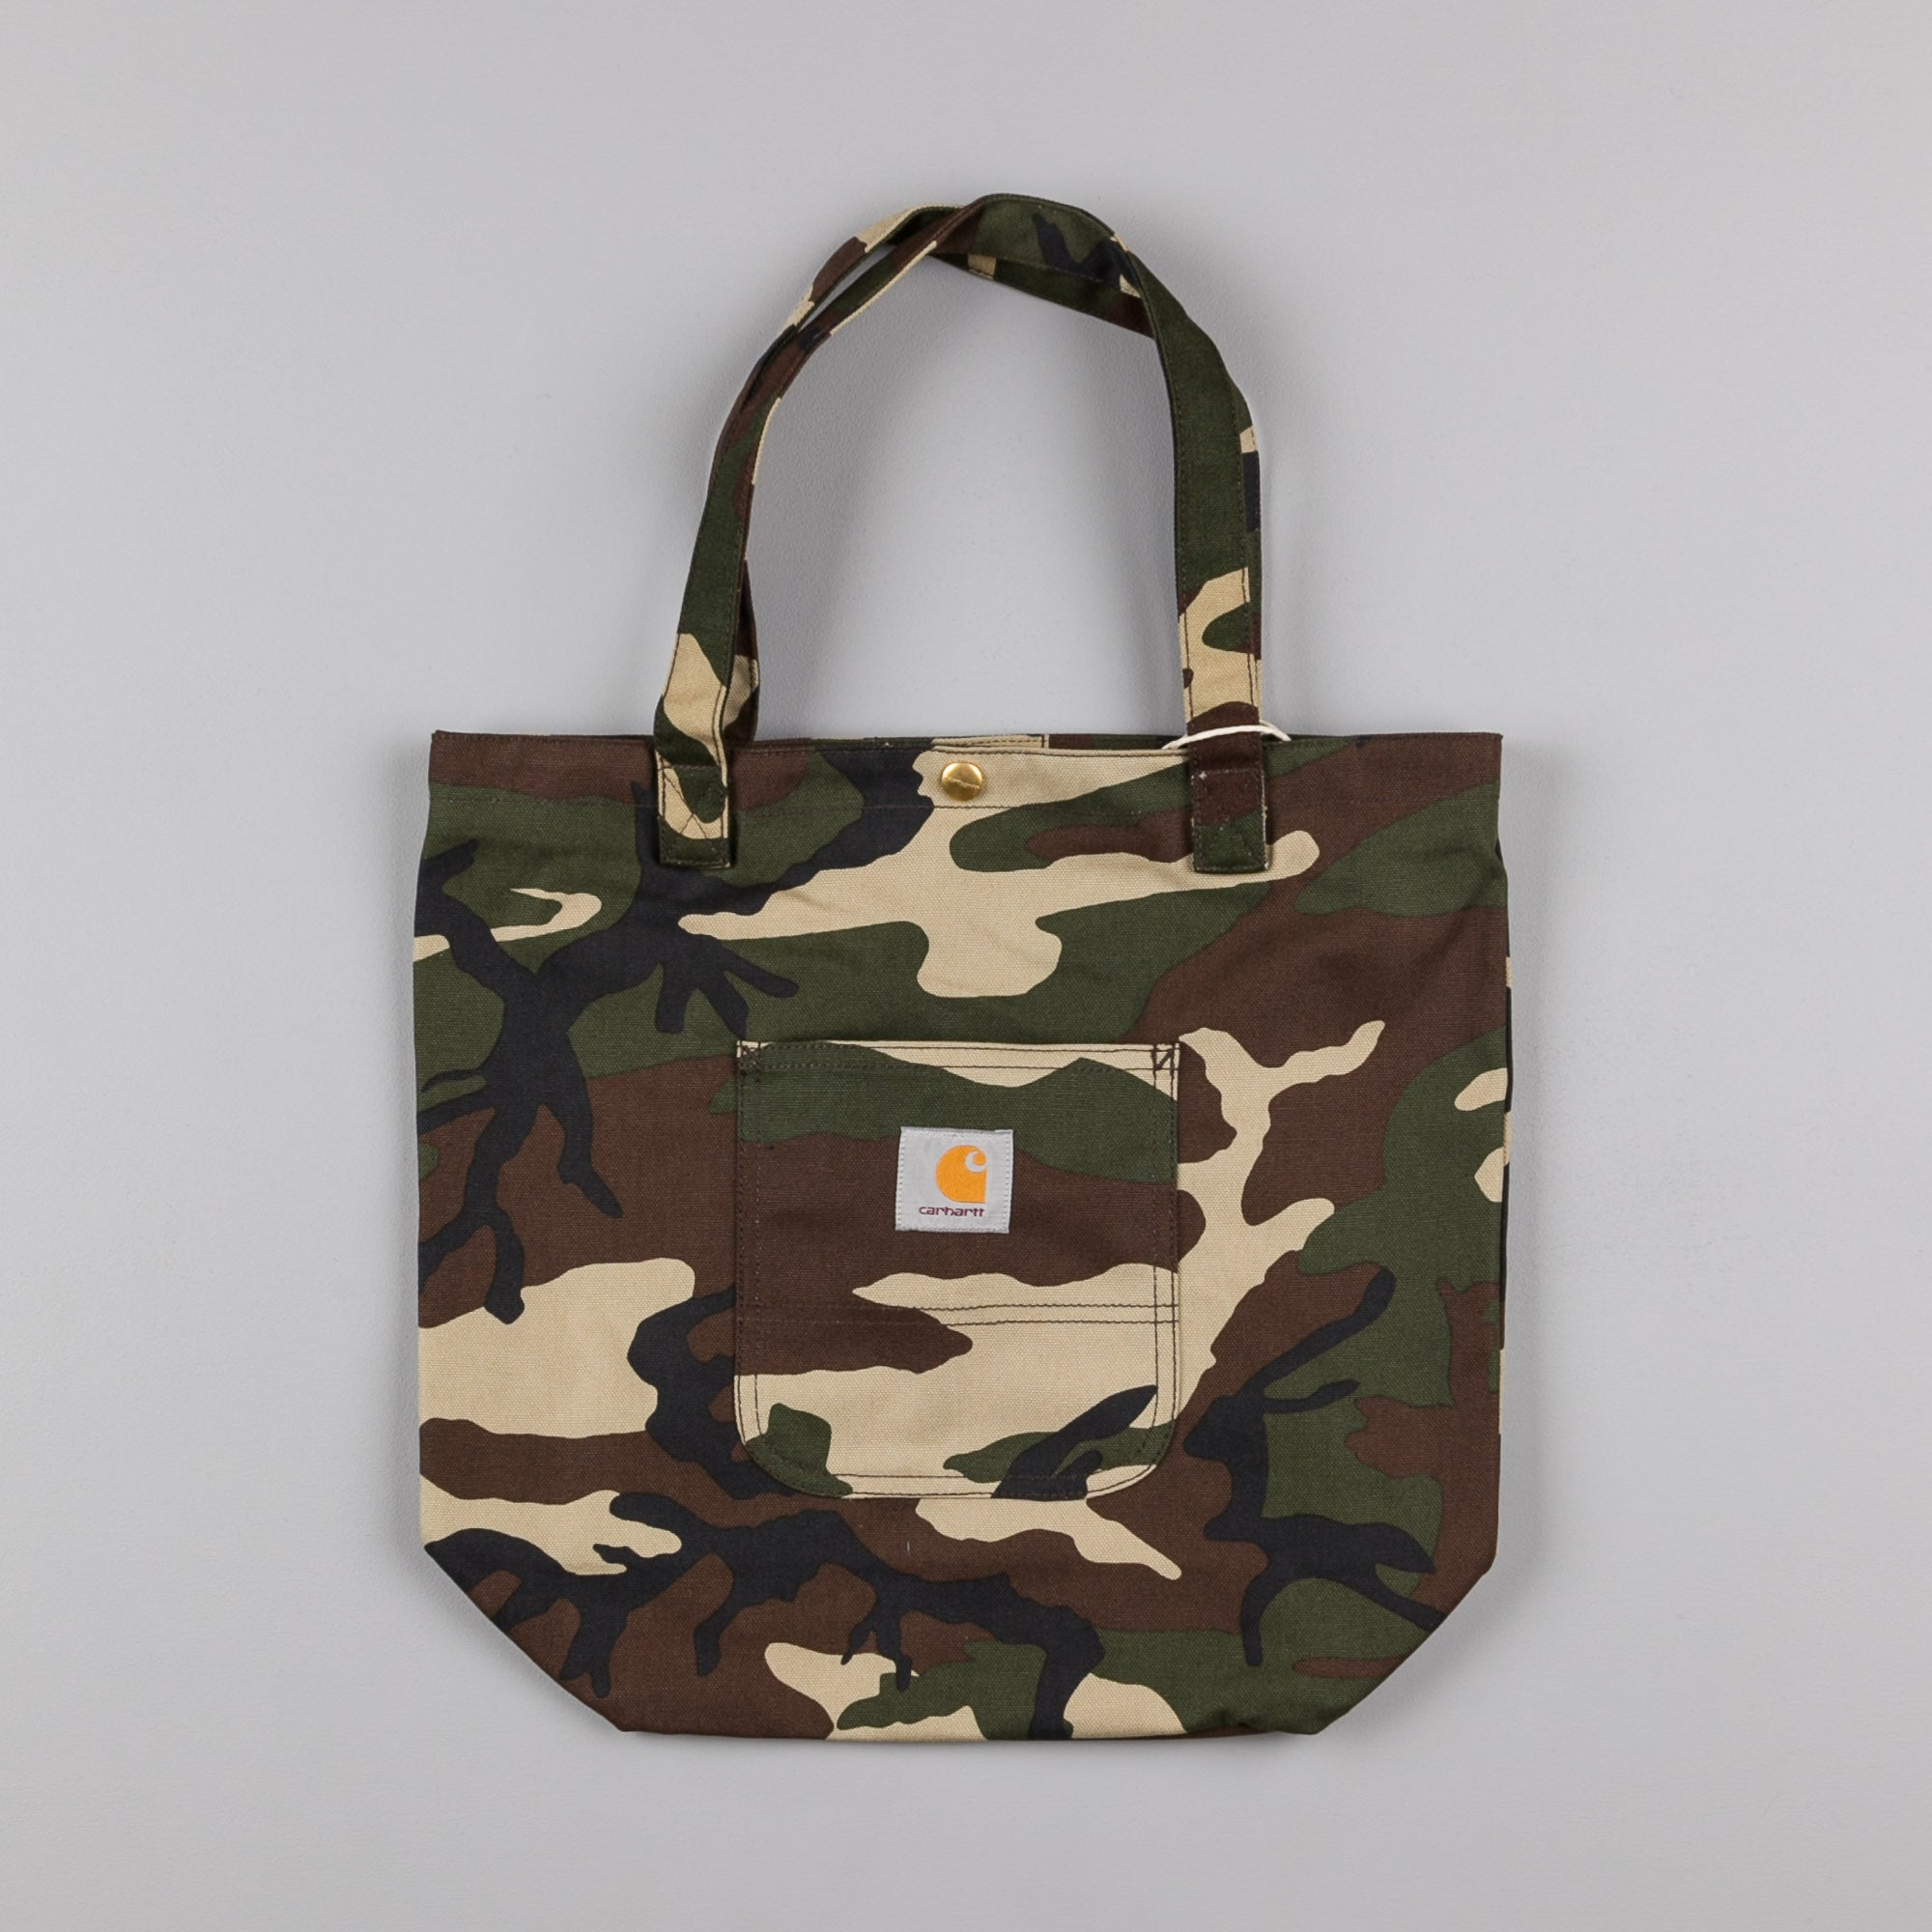 Carhartt Simple Tote Bag - Camo Morass